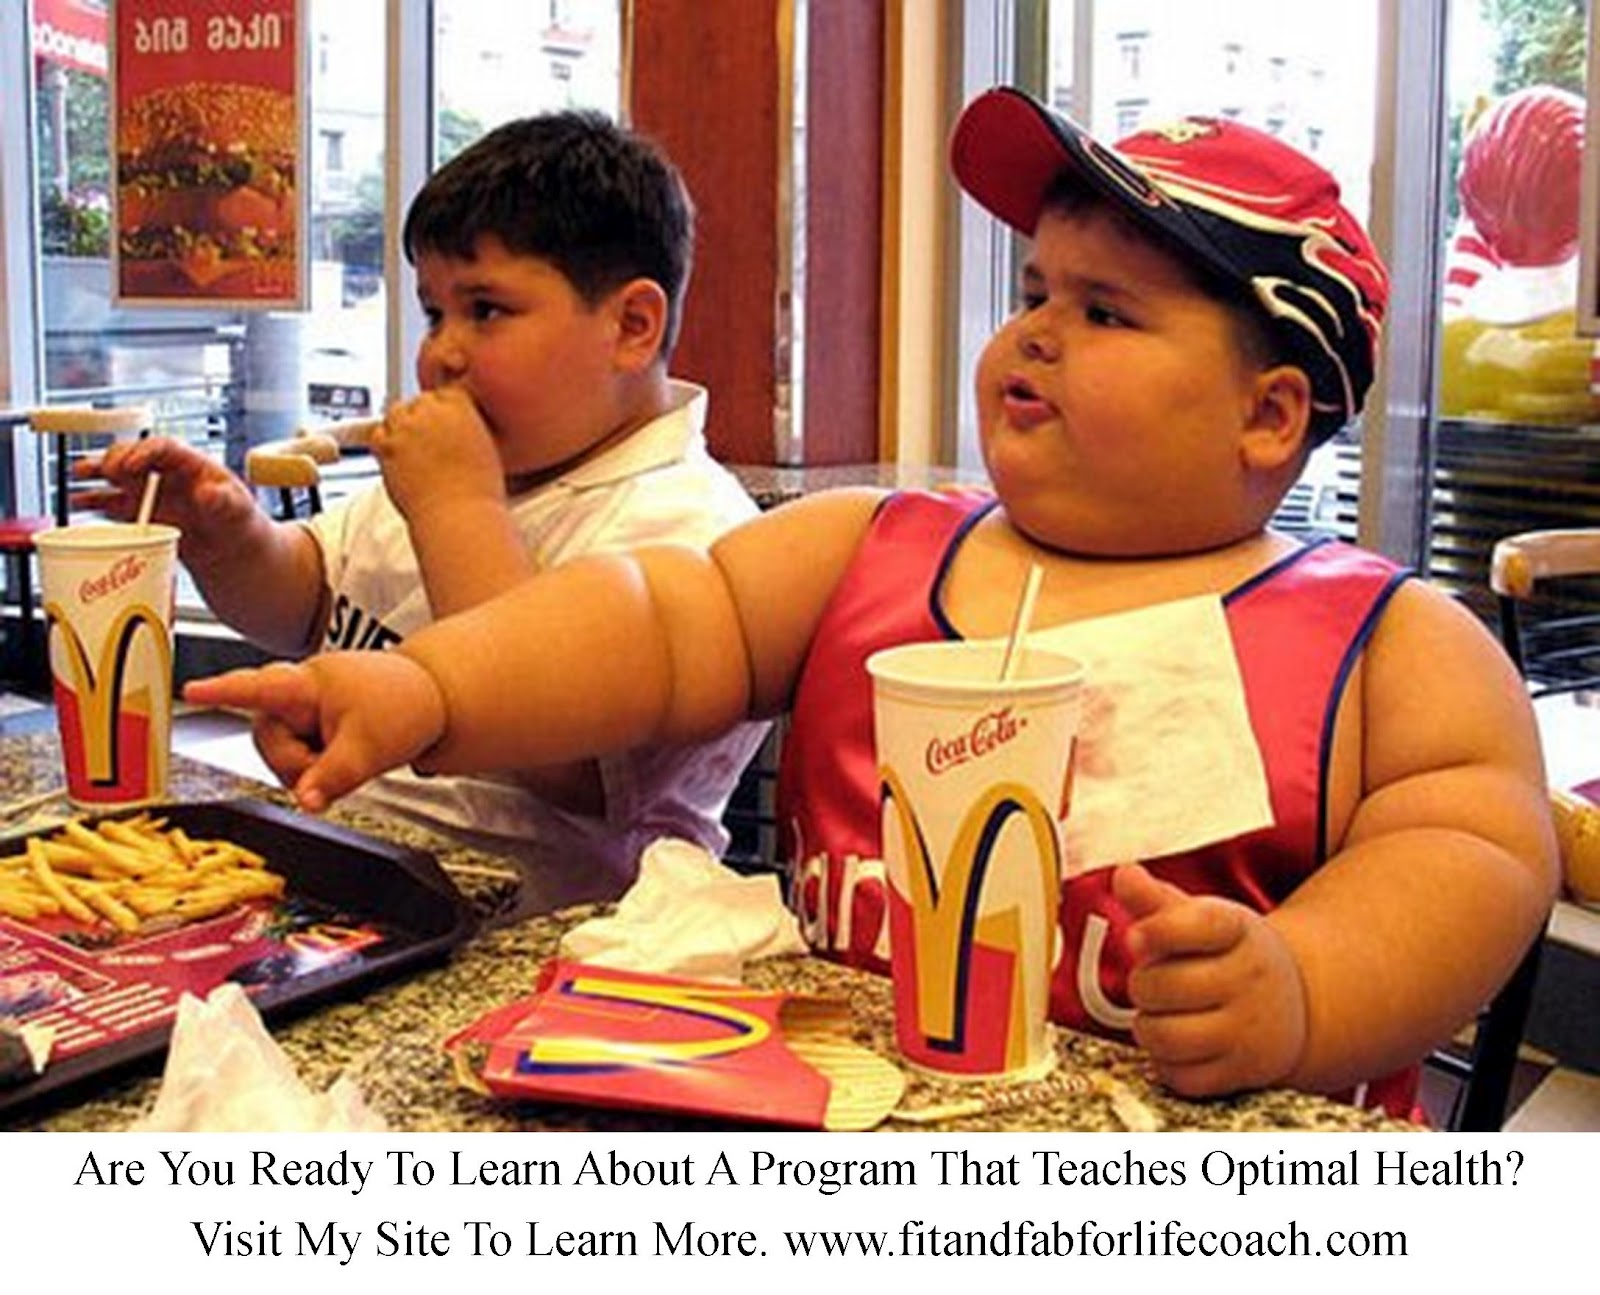 fast-food ads on TV is associated with obesity in adolescentsand youngFast Food Obesity Adults